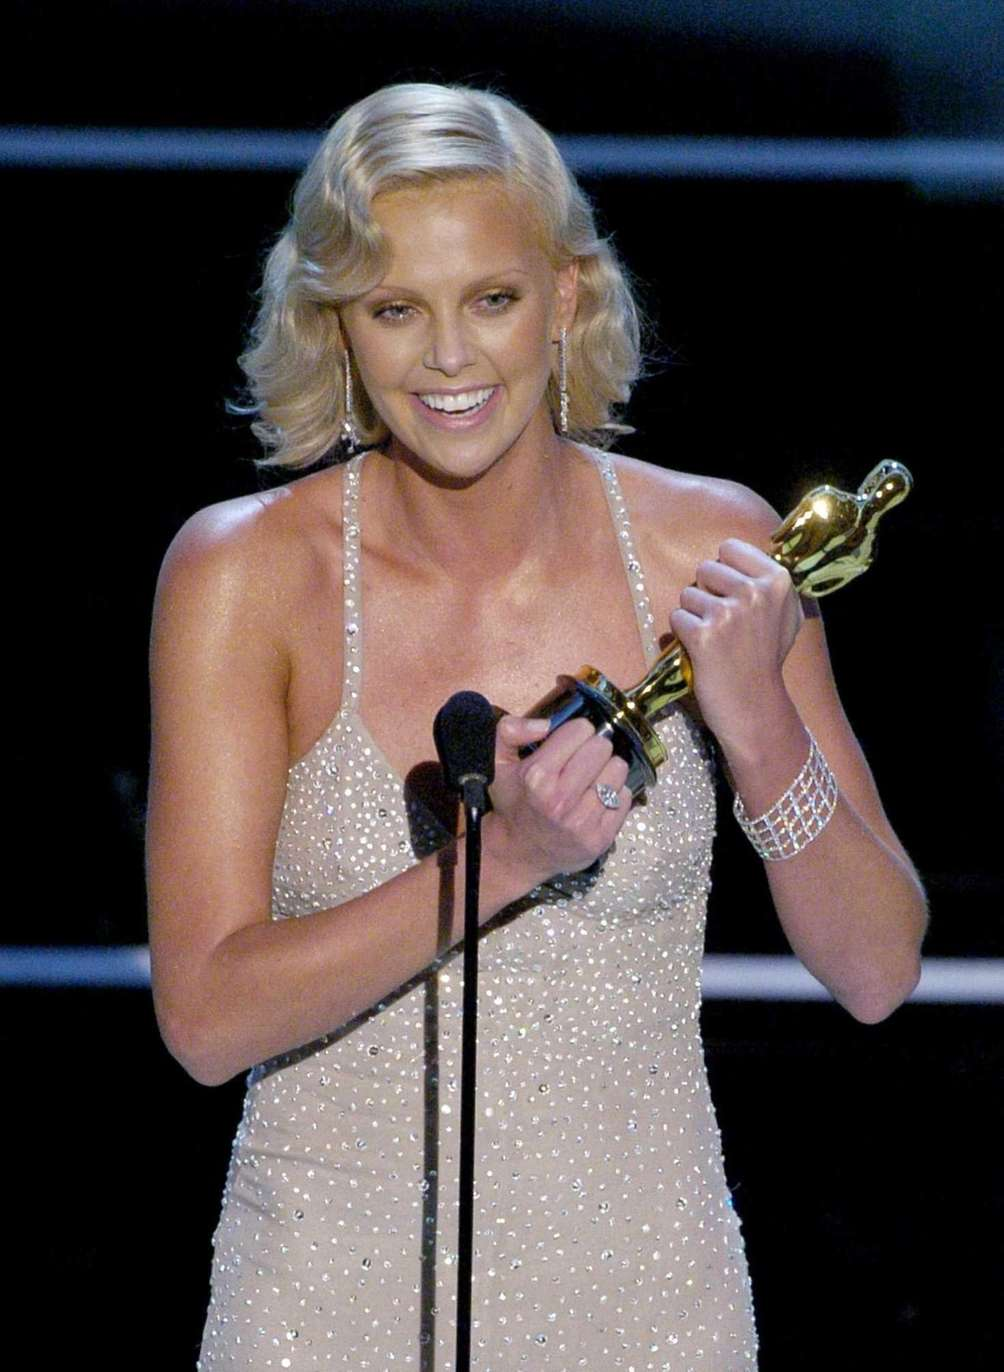 Actor Charlize Theron, accepting the Oscar statuette she